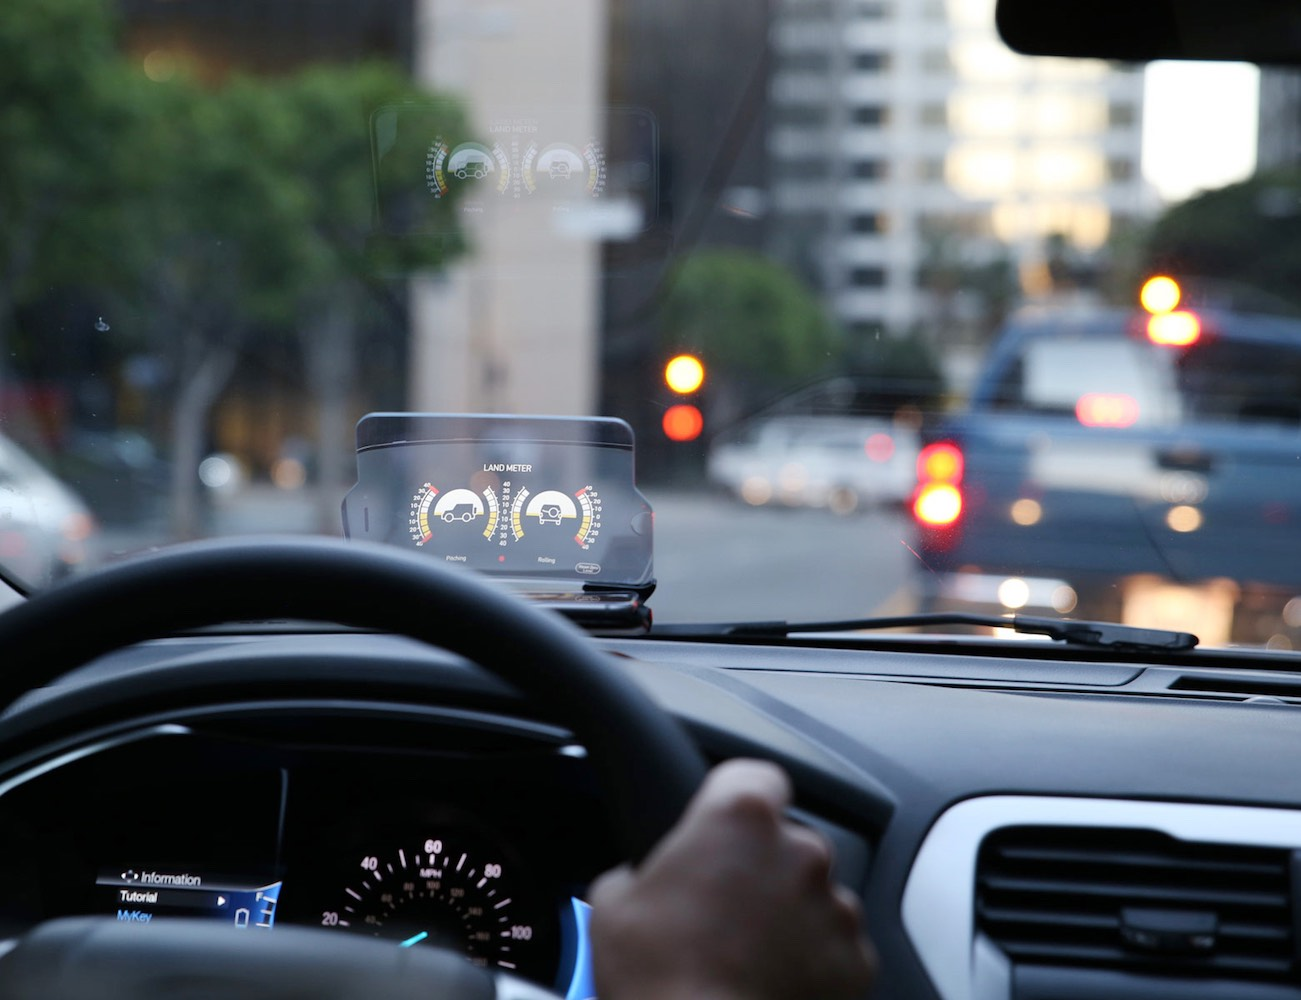 HUDWAY Glass – Keep Your Eyes On the Road